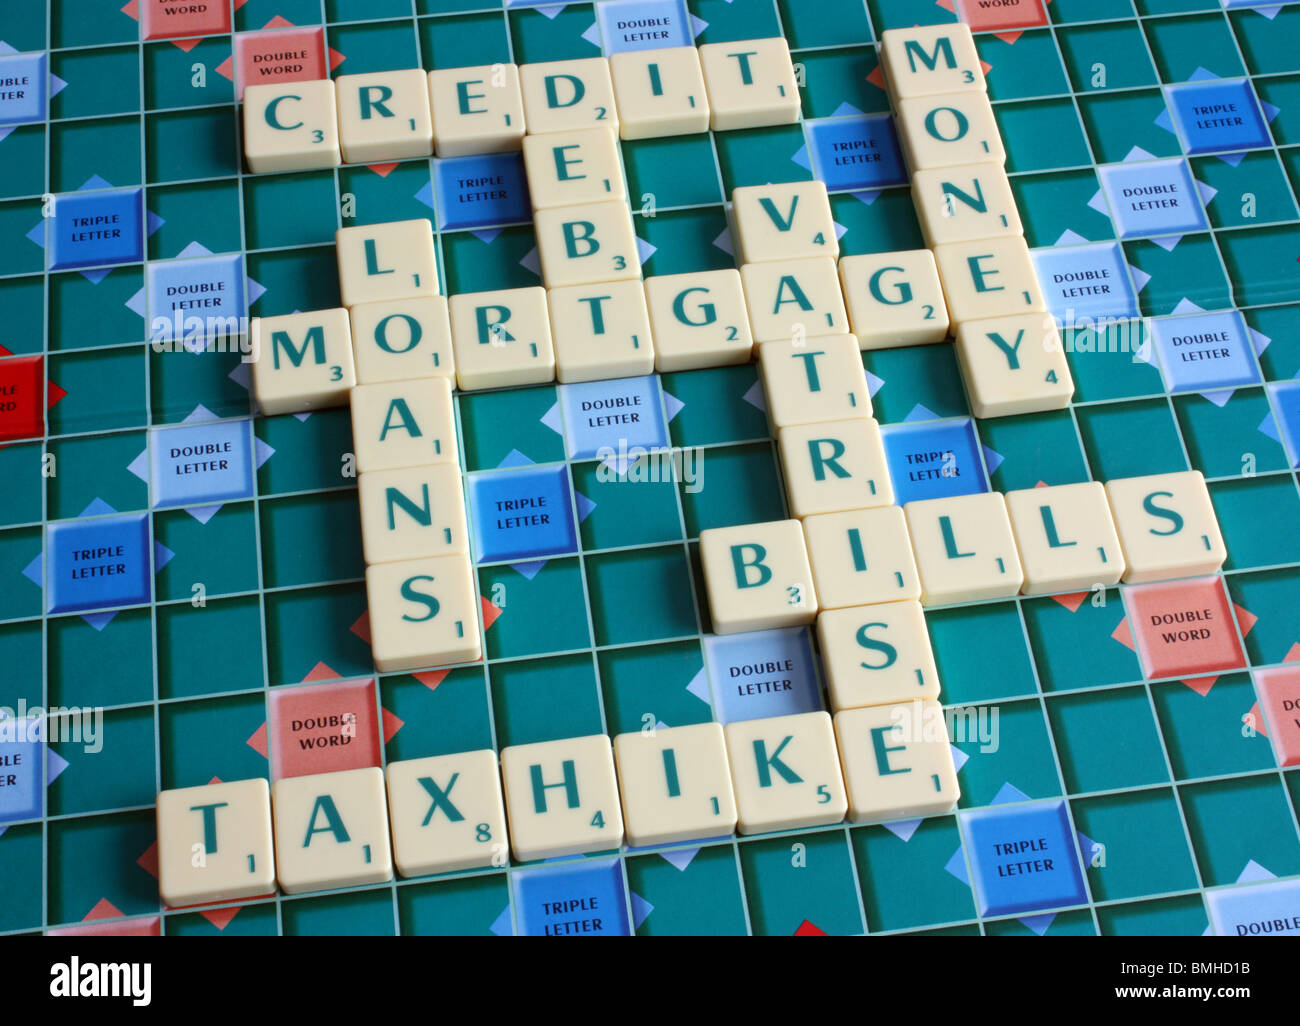 A scrabble board with numerous words implementing debt,credit & money worries - Stock Image